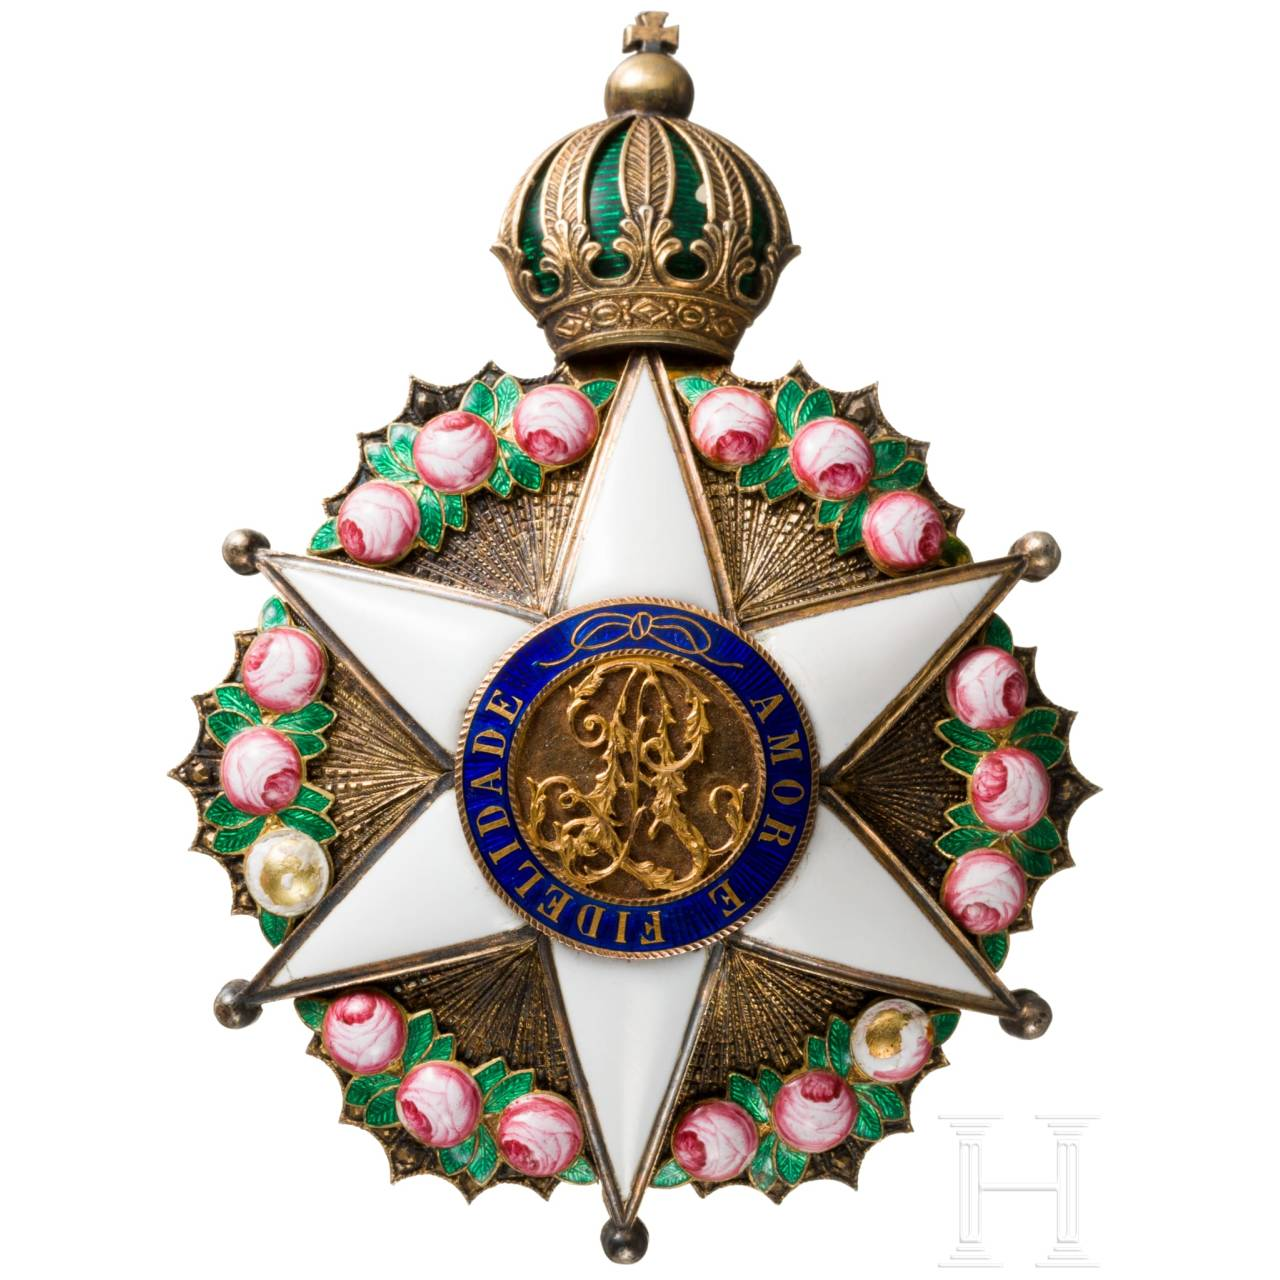 Imperial Order of the Rose a Commander's Breast Star (1822 - 1889)